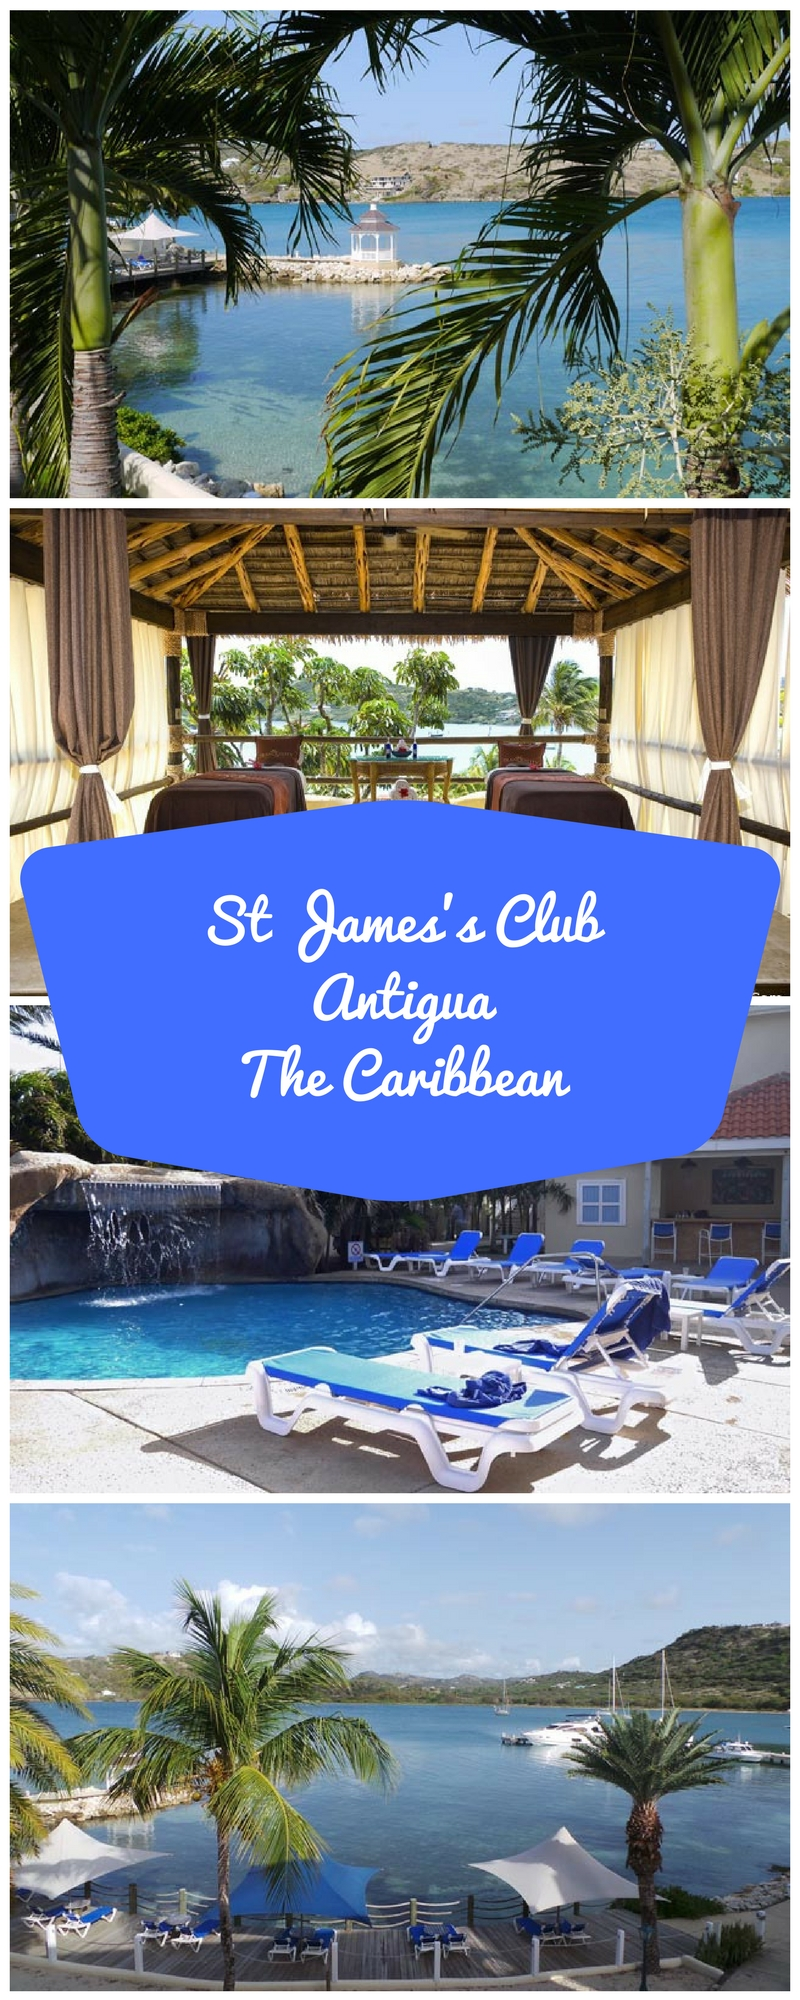 St James's Club Hotel and Resort, Antigua, The Caribbean - Antigua Luxury Resort